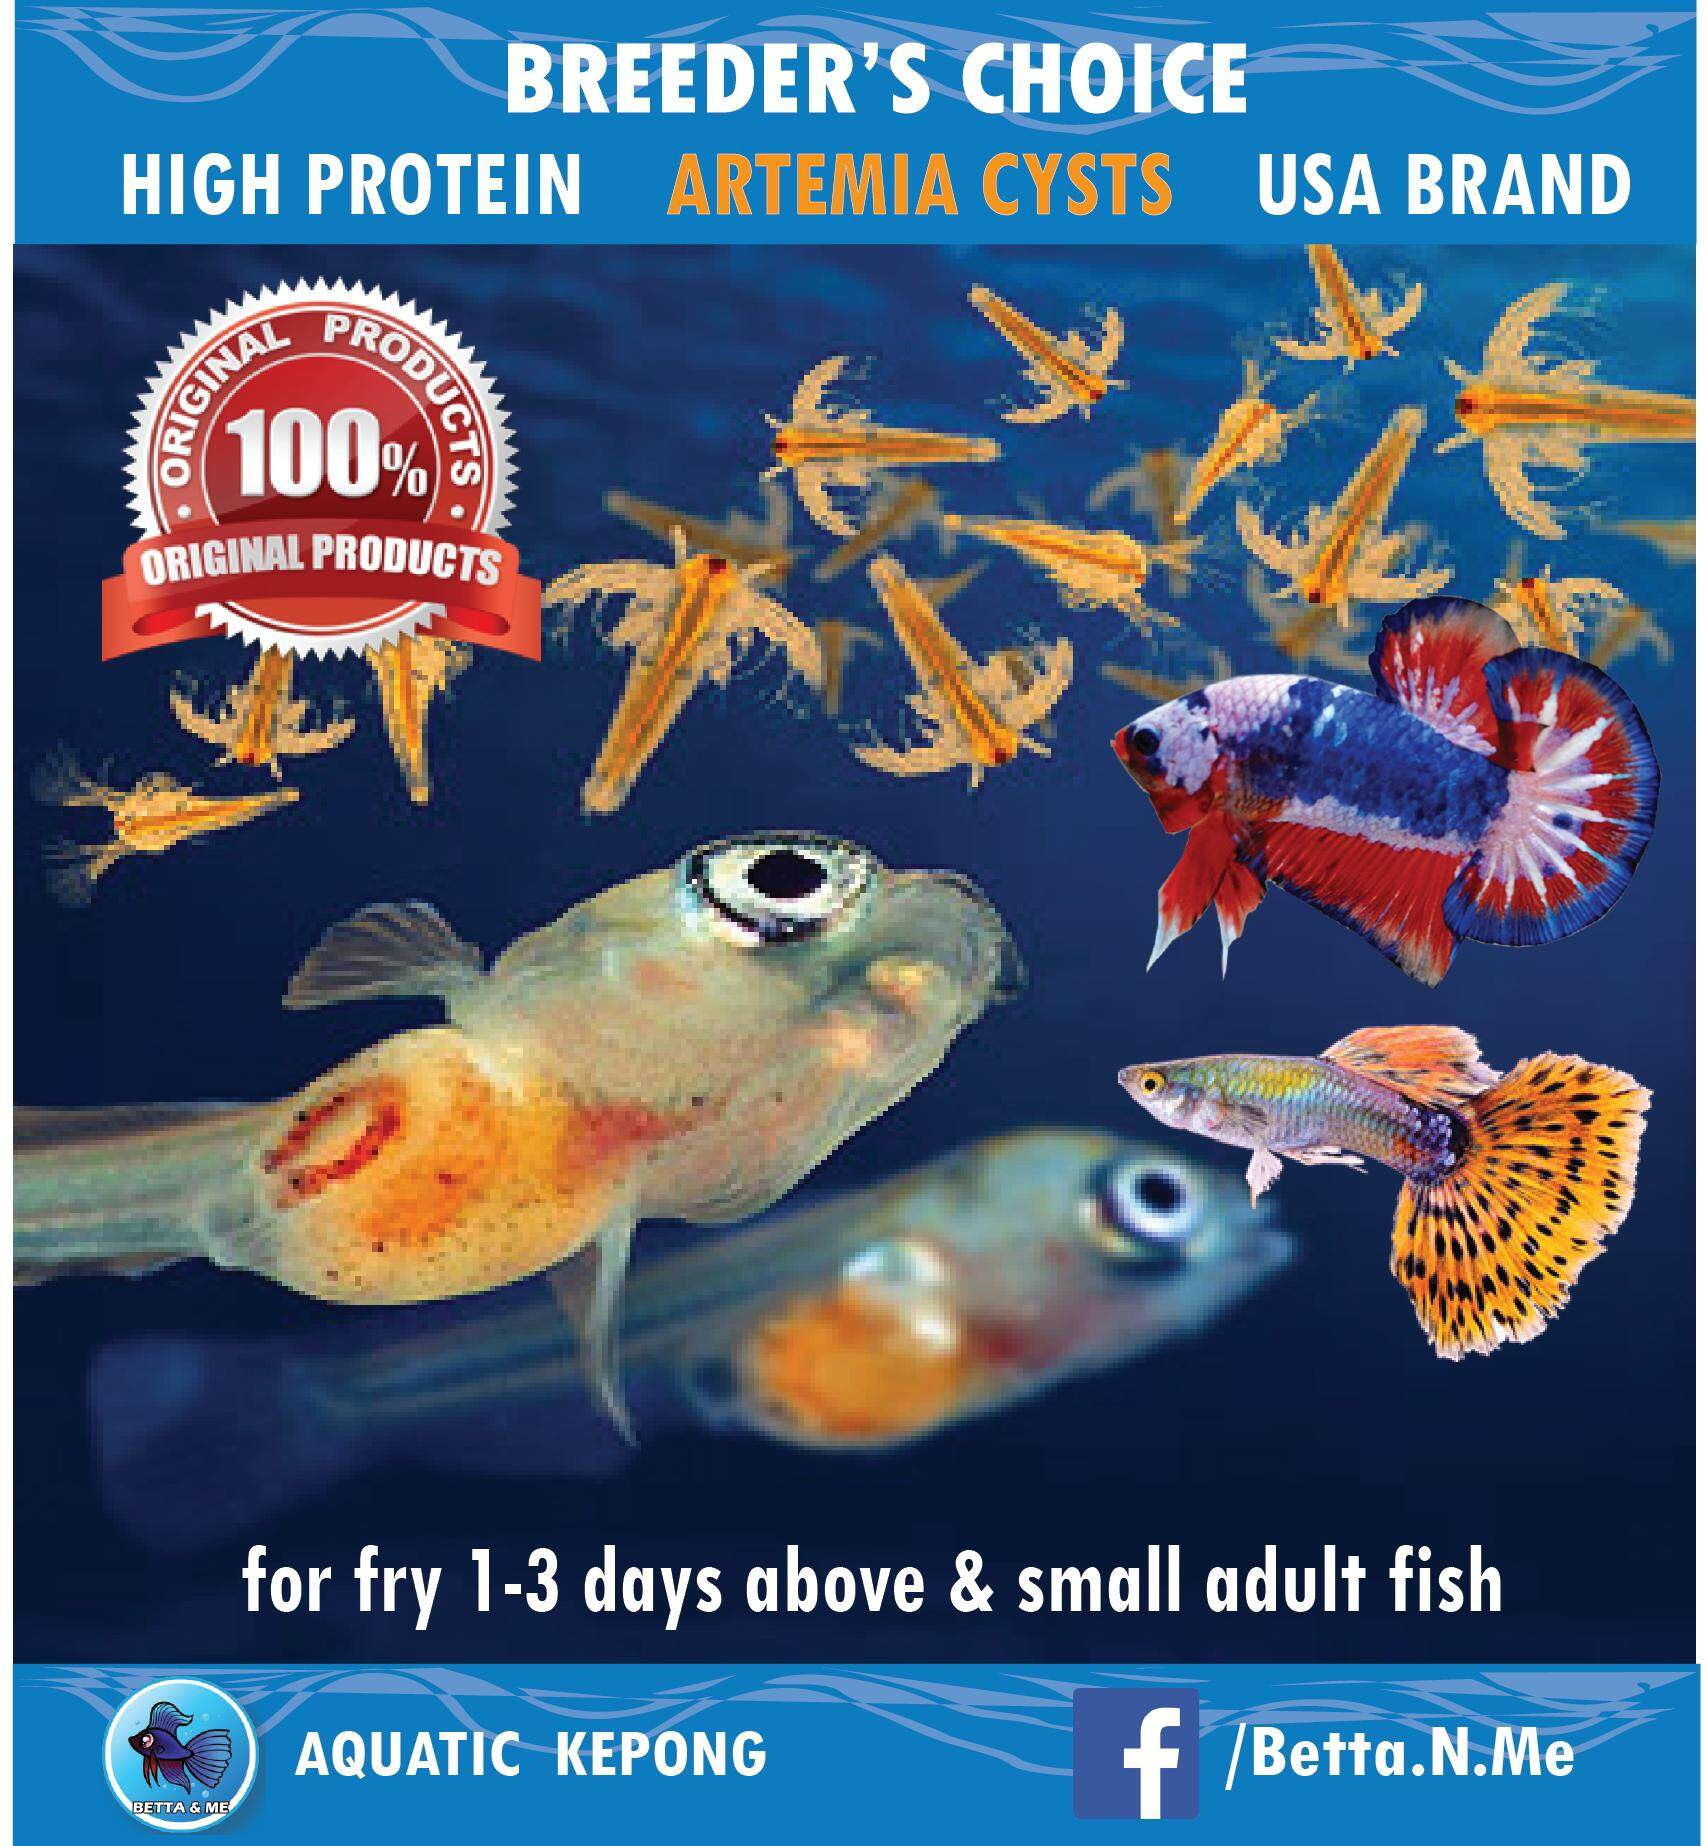 USA ARTEMIA CYSTS / BABY BRINE SHRIMP EGGS (BBS) FOR FRY 1-3 DAYS ABOVE &  SMALL FISH LIKE GUPPY, BETTA & ETC